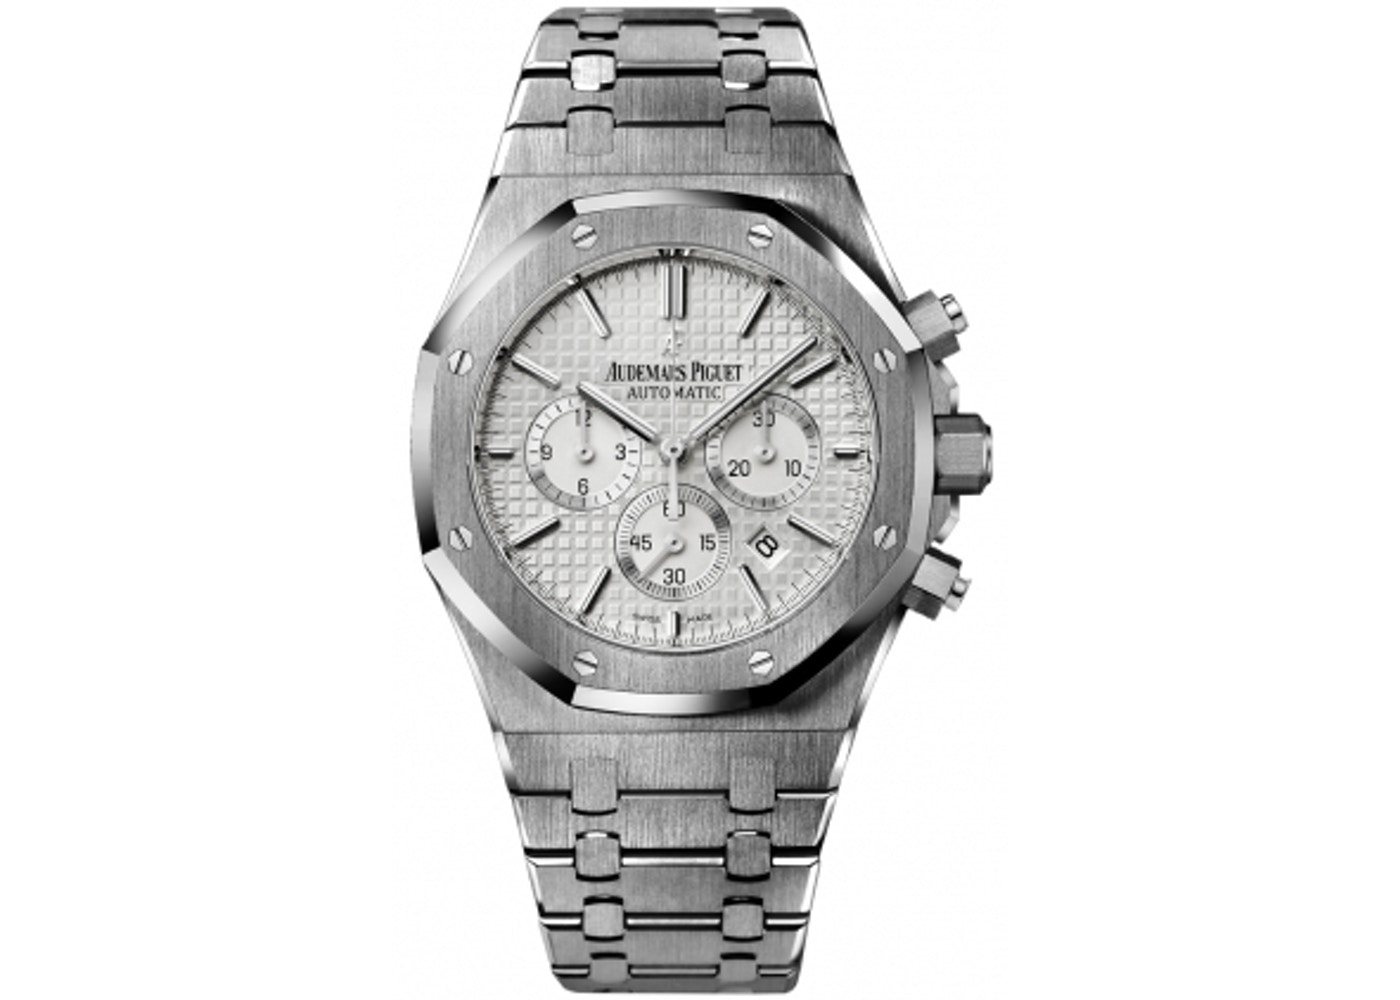 Audemars Piguet Royal Oak 26320st Oo 1220st 02